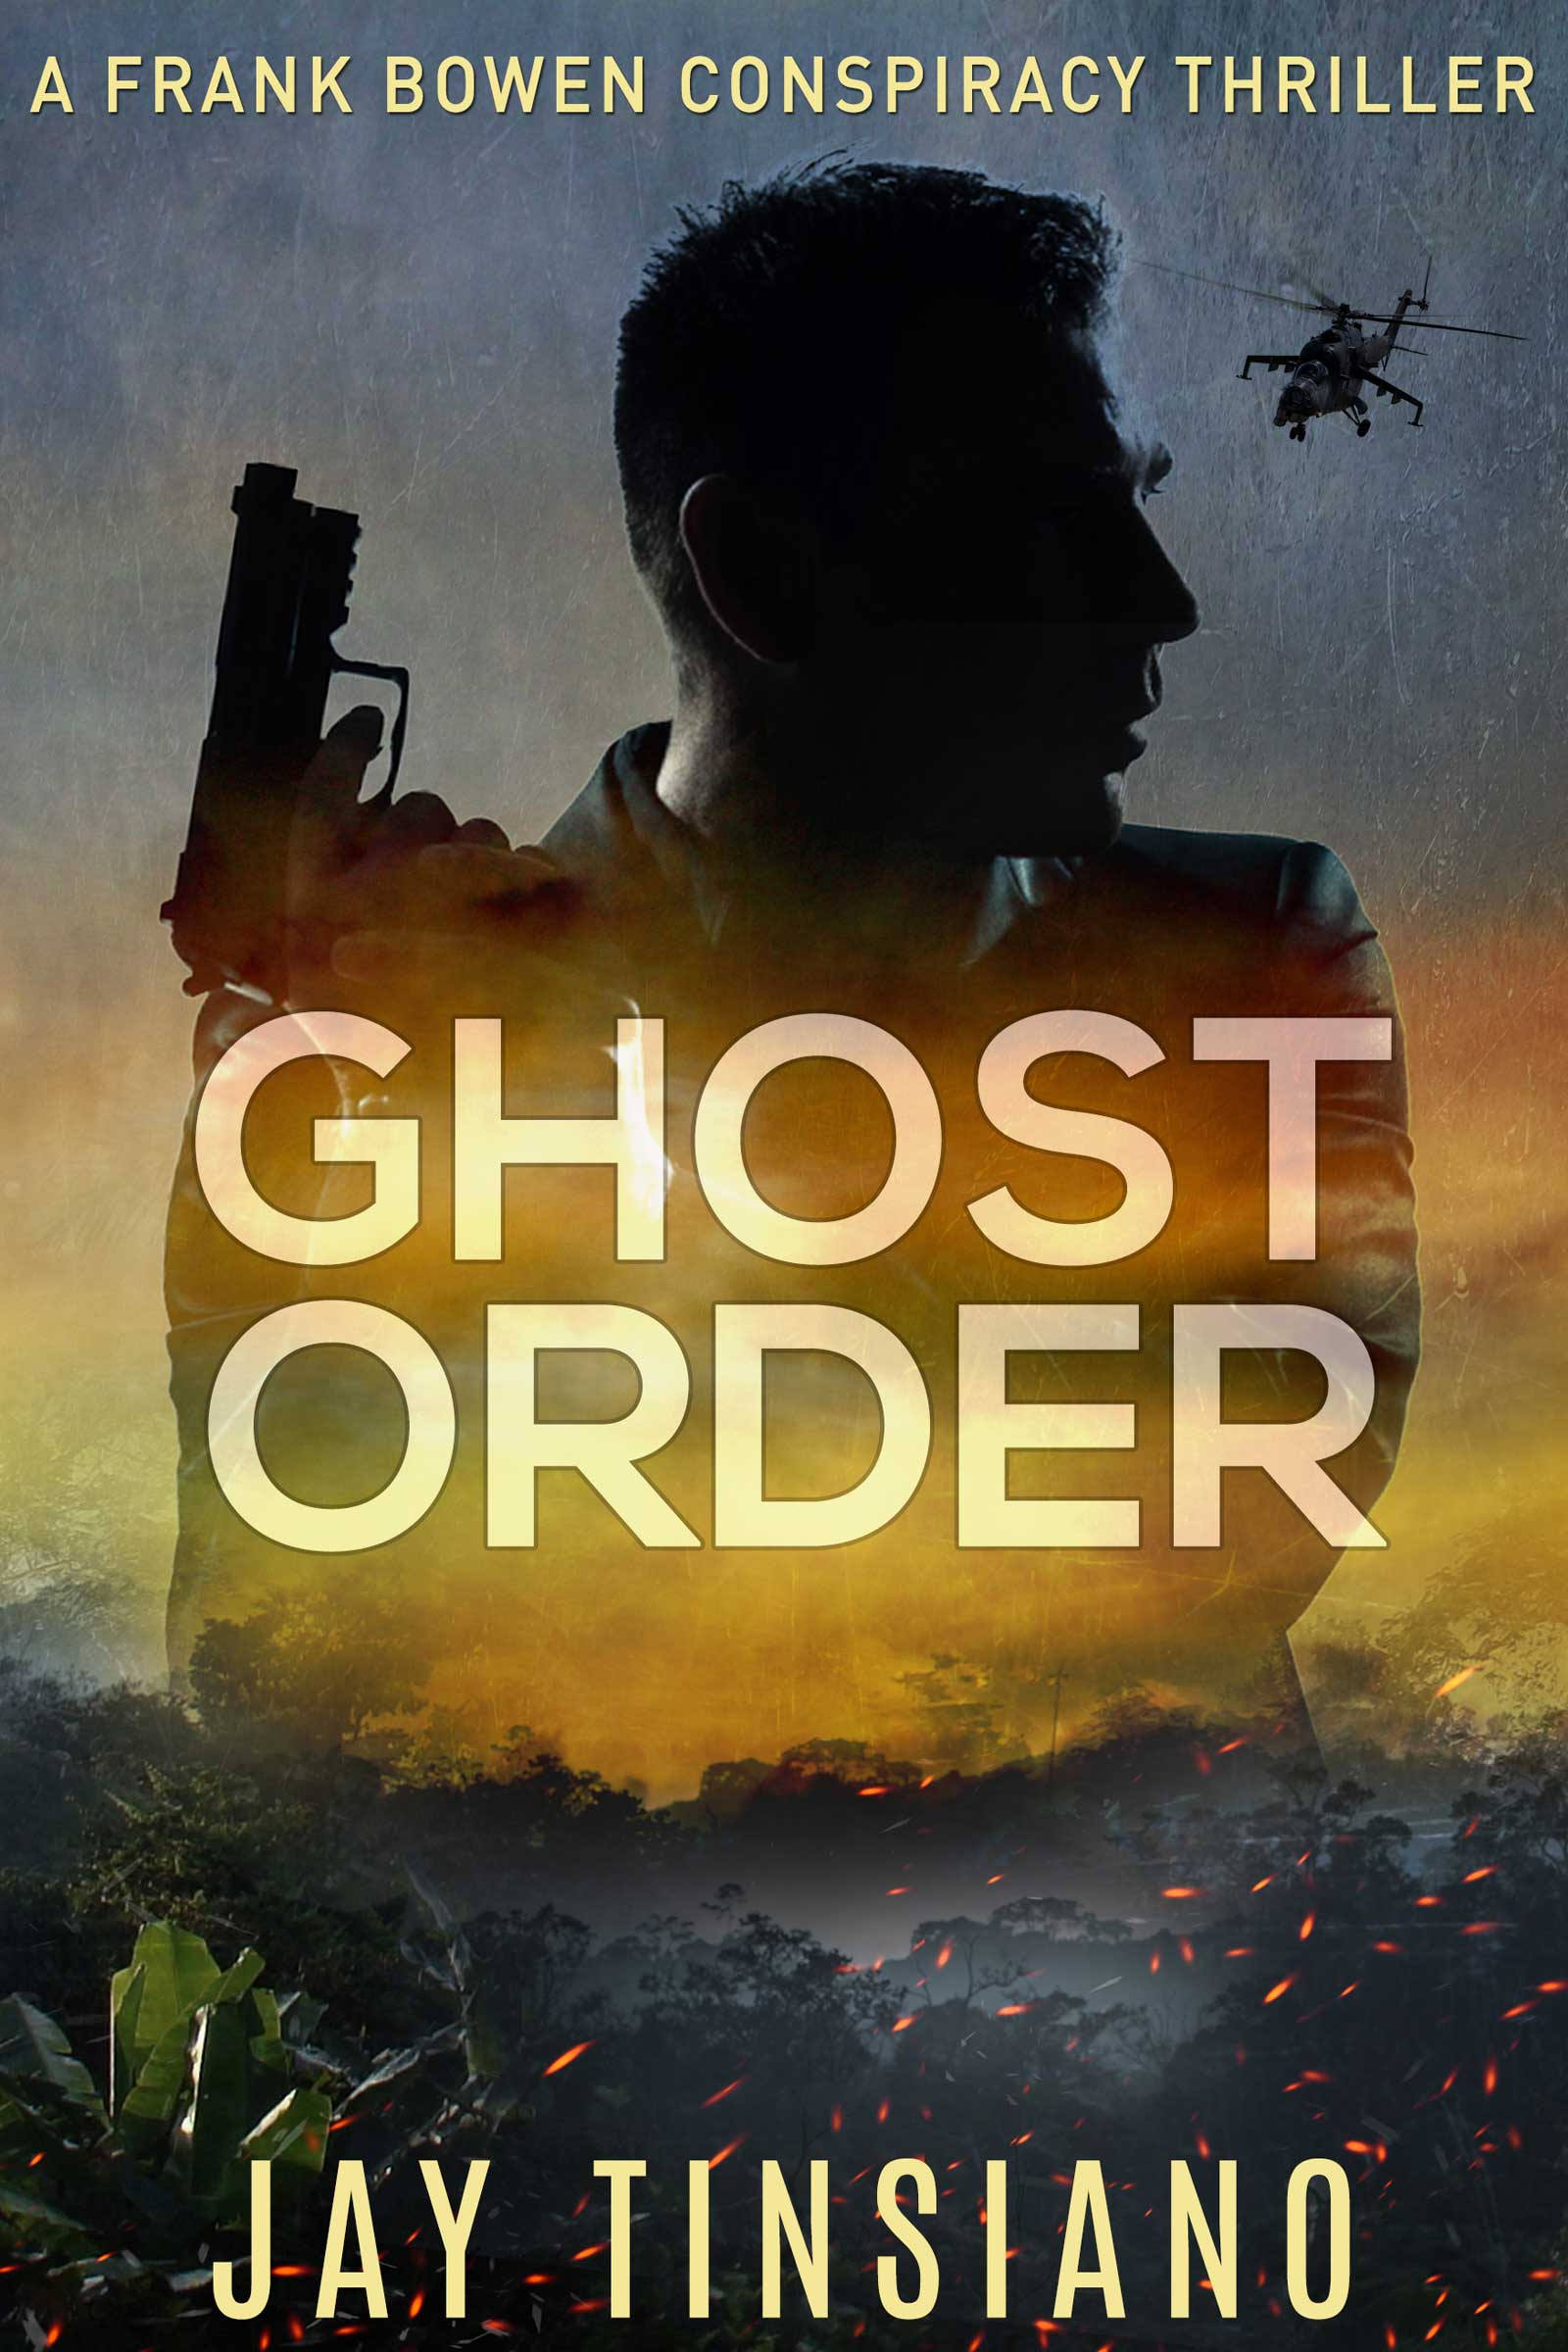 Ghost Order Release